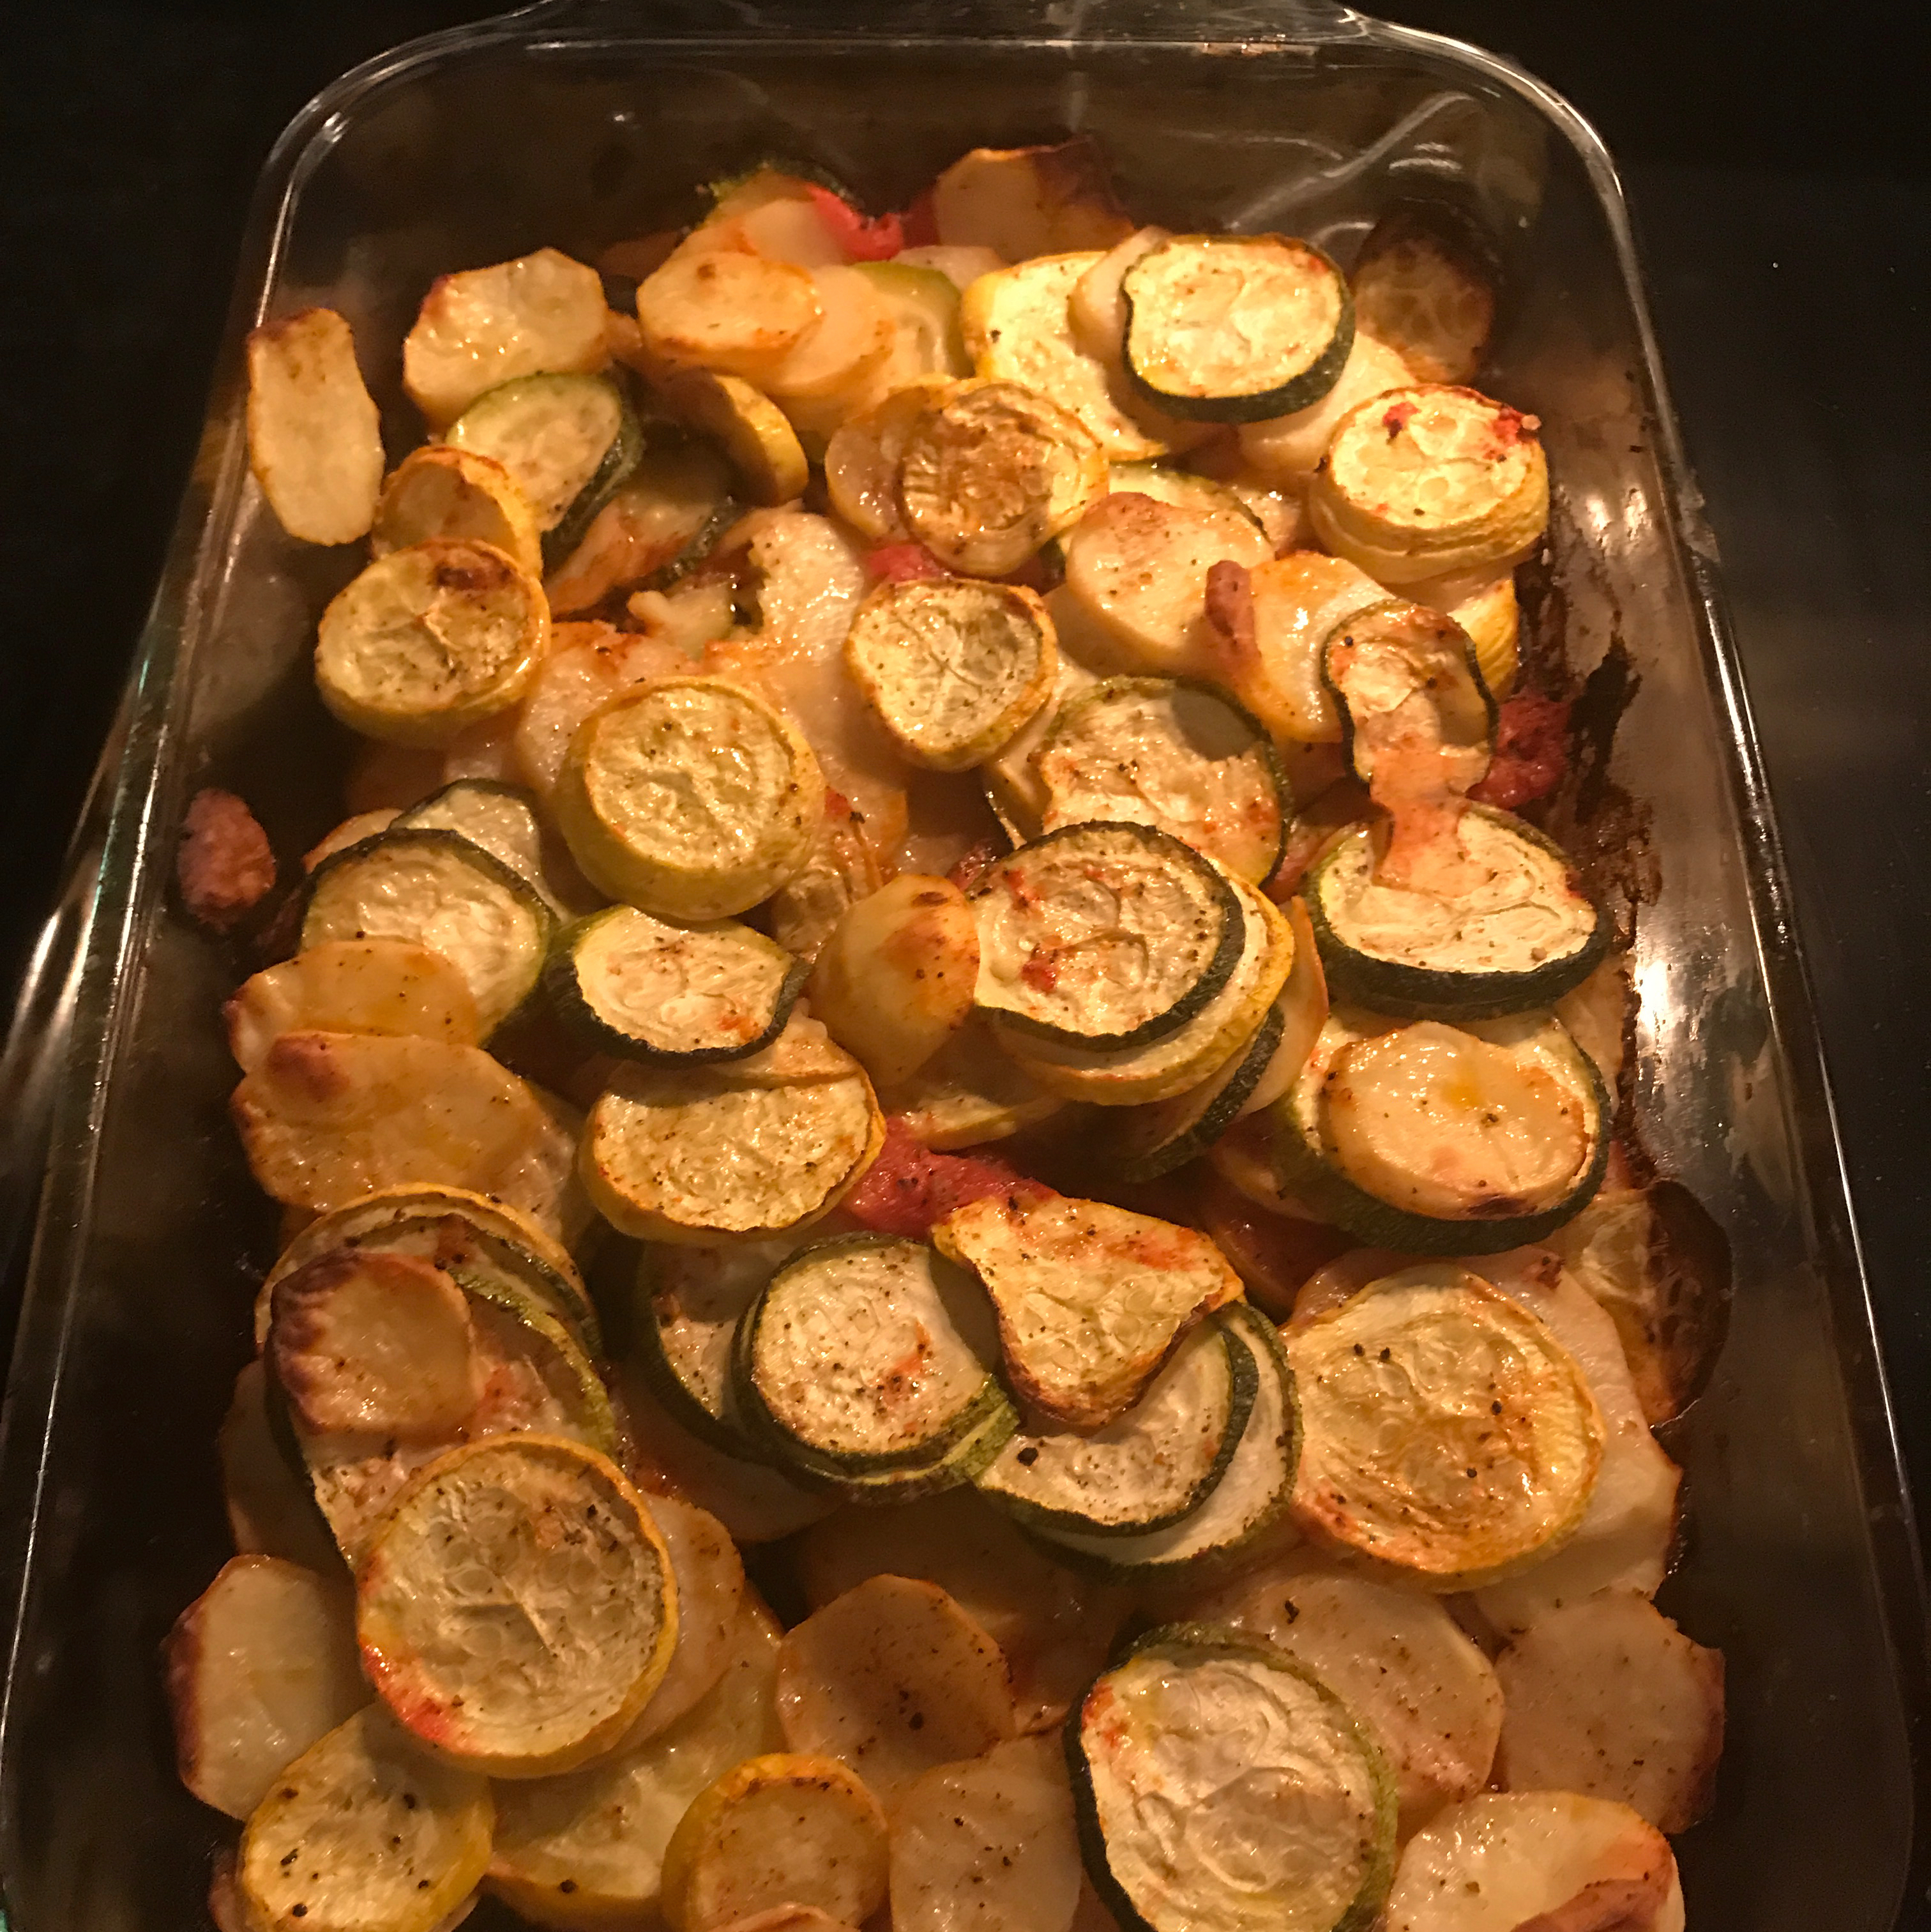 Briam (Greek Baked Zucchini and Potatoes) Liesbeth Demaer Ingenito